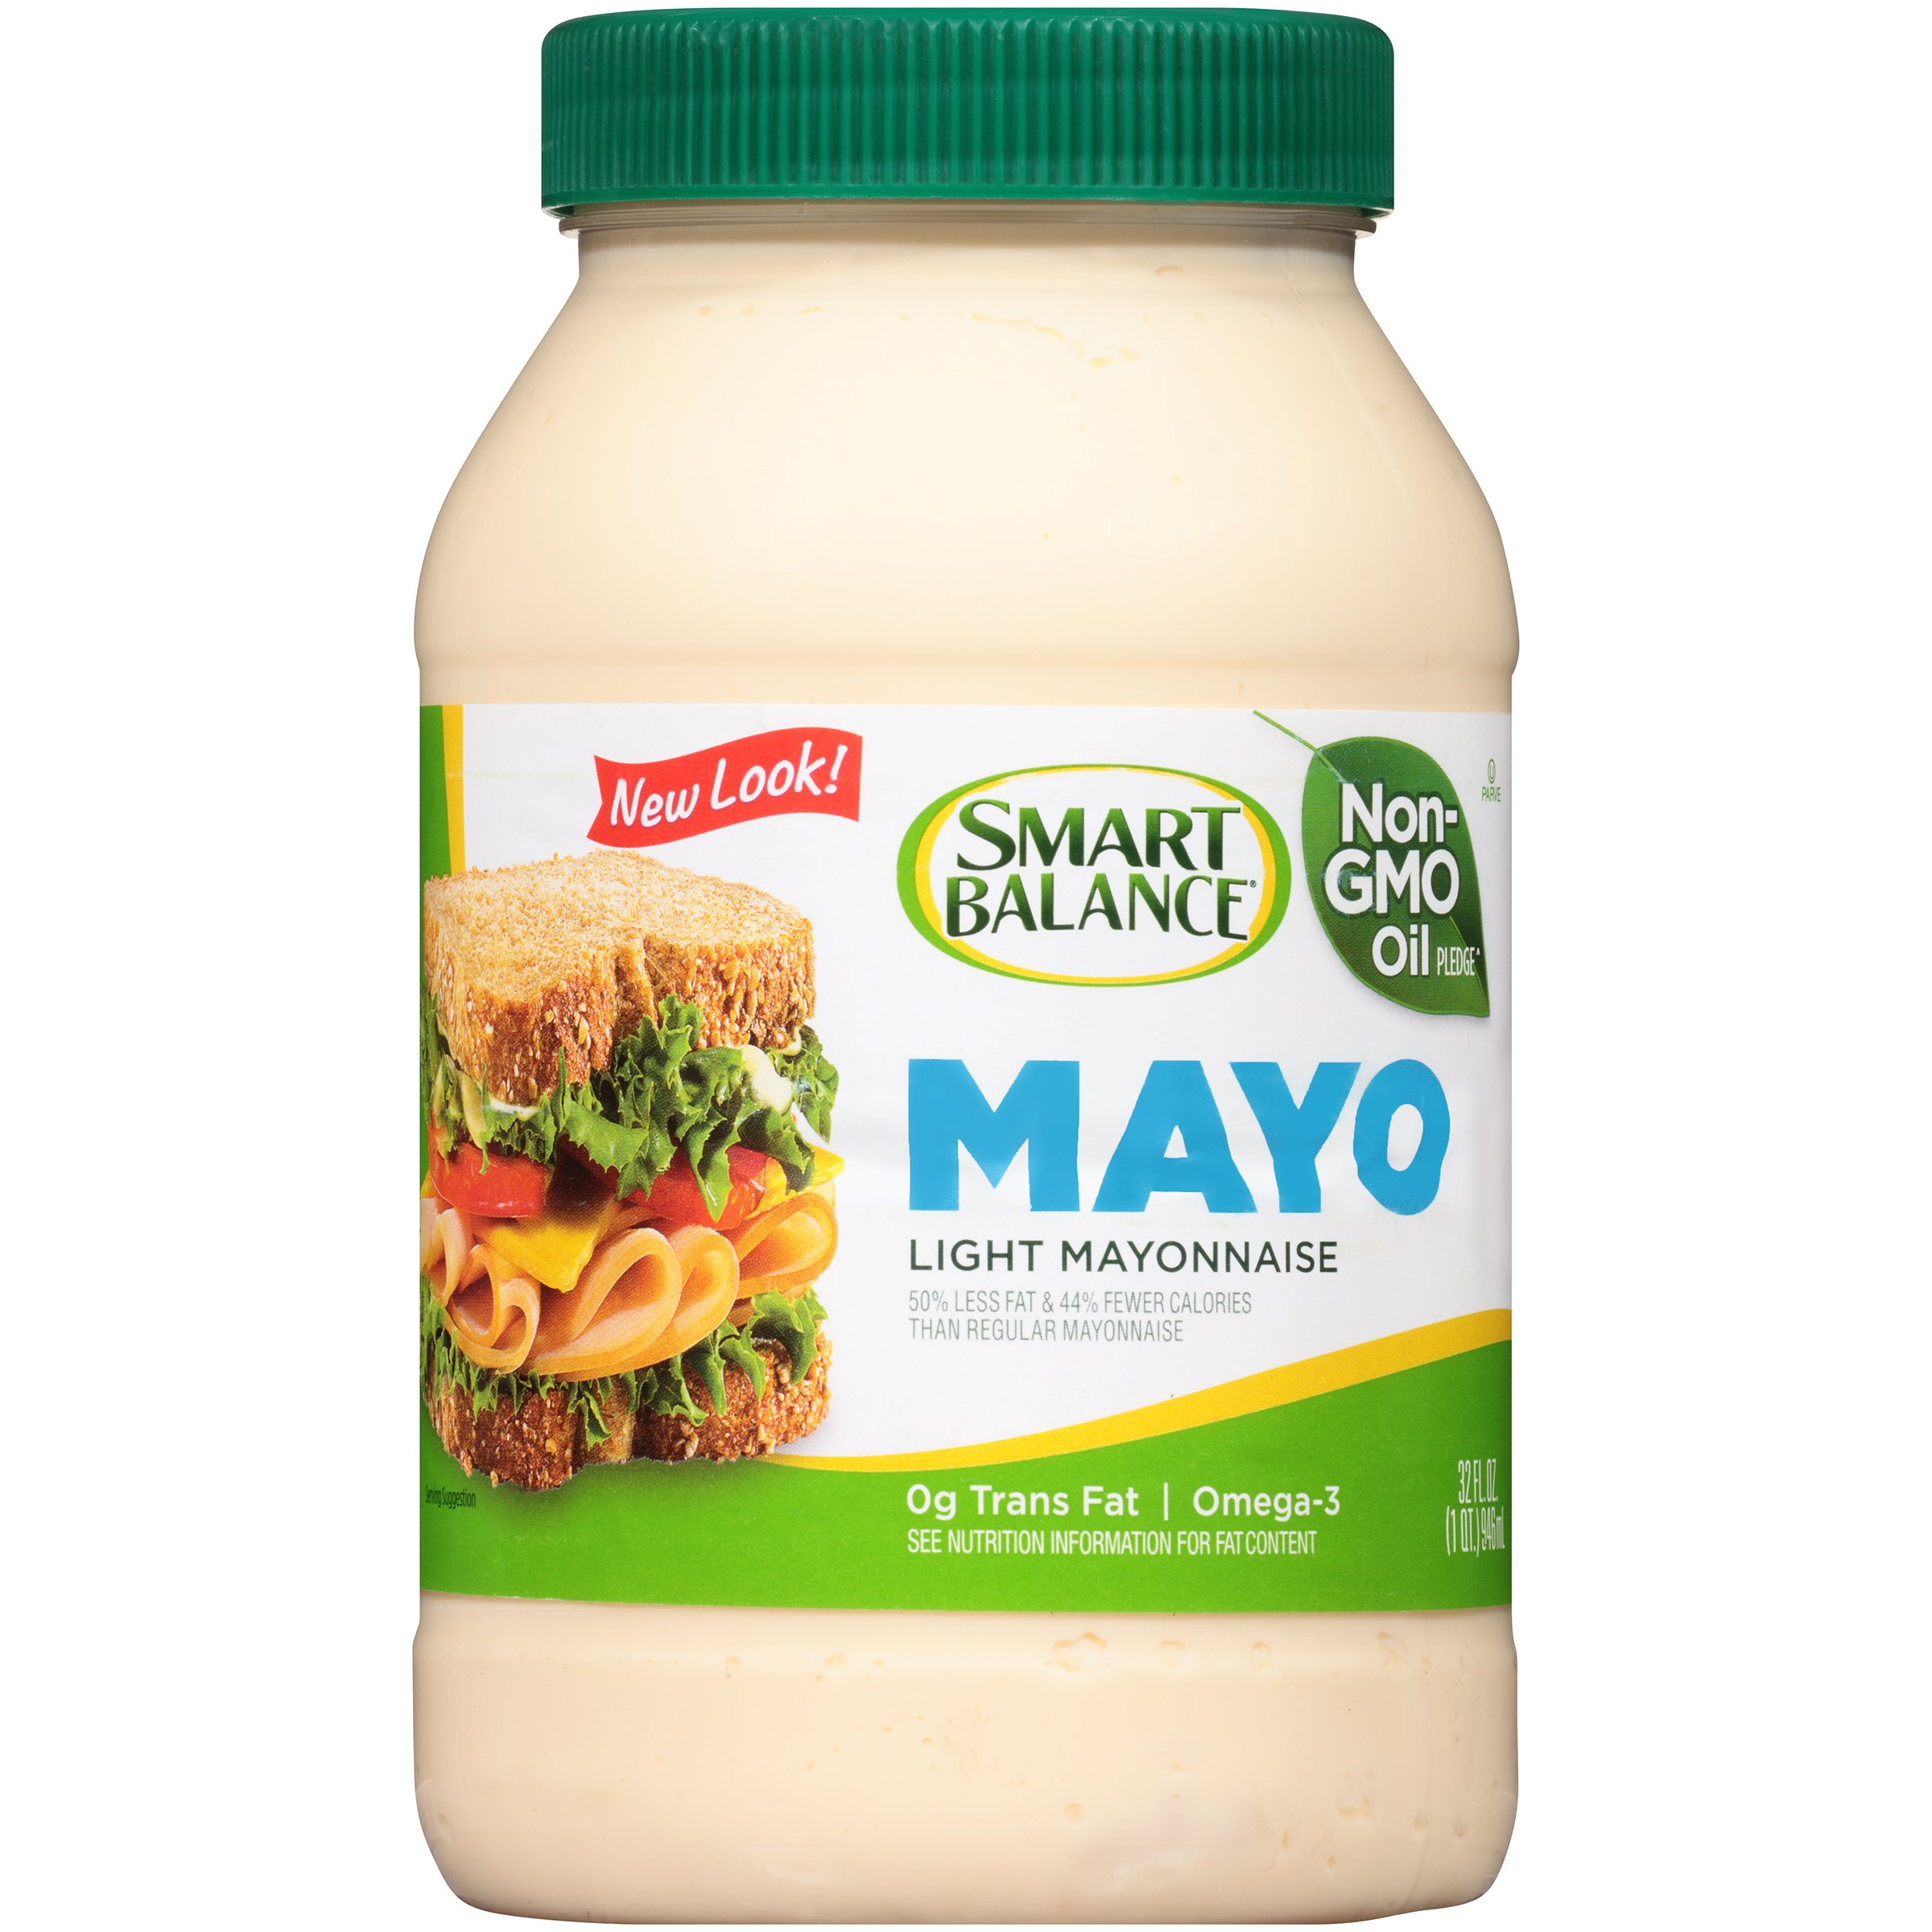 How many calories are in mayonnaise